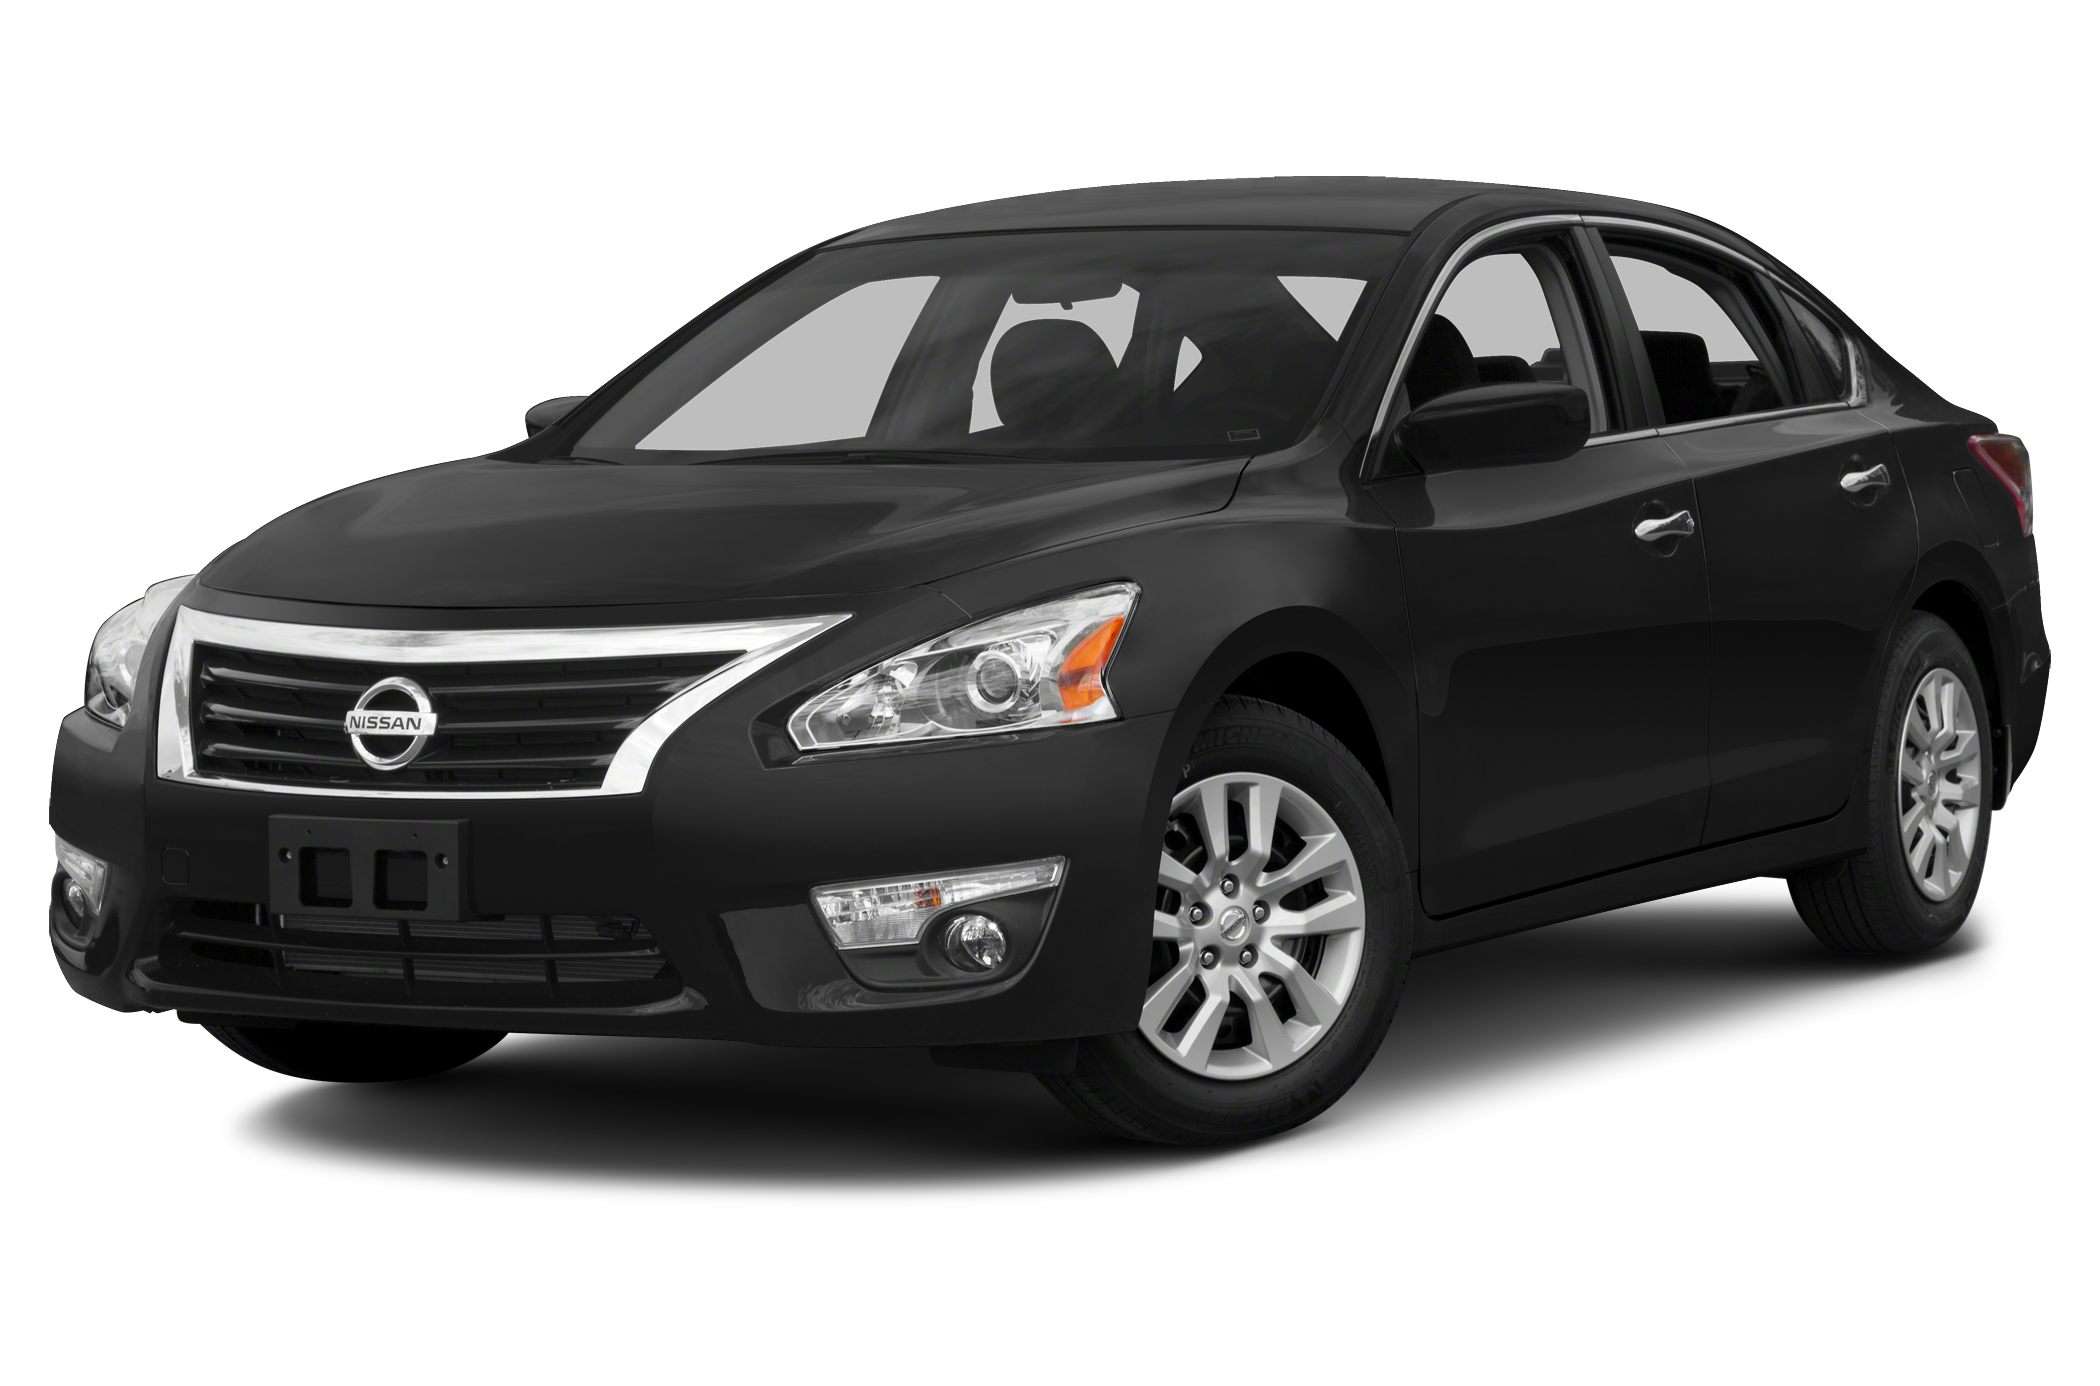 Pictures of nissan altima #5